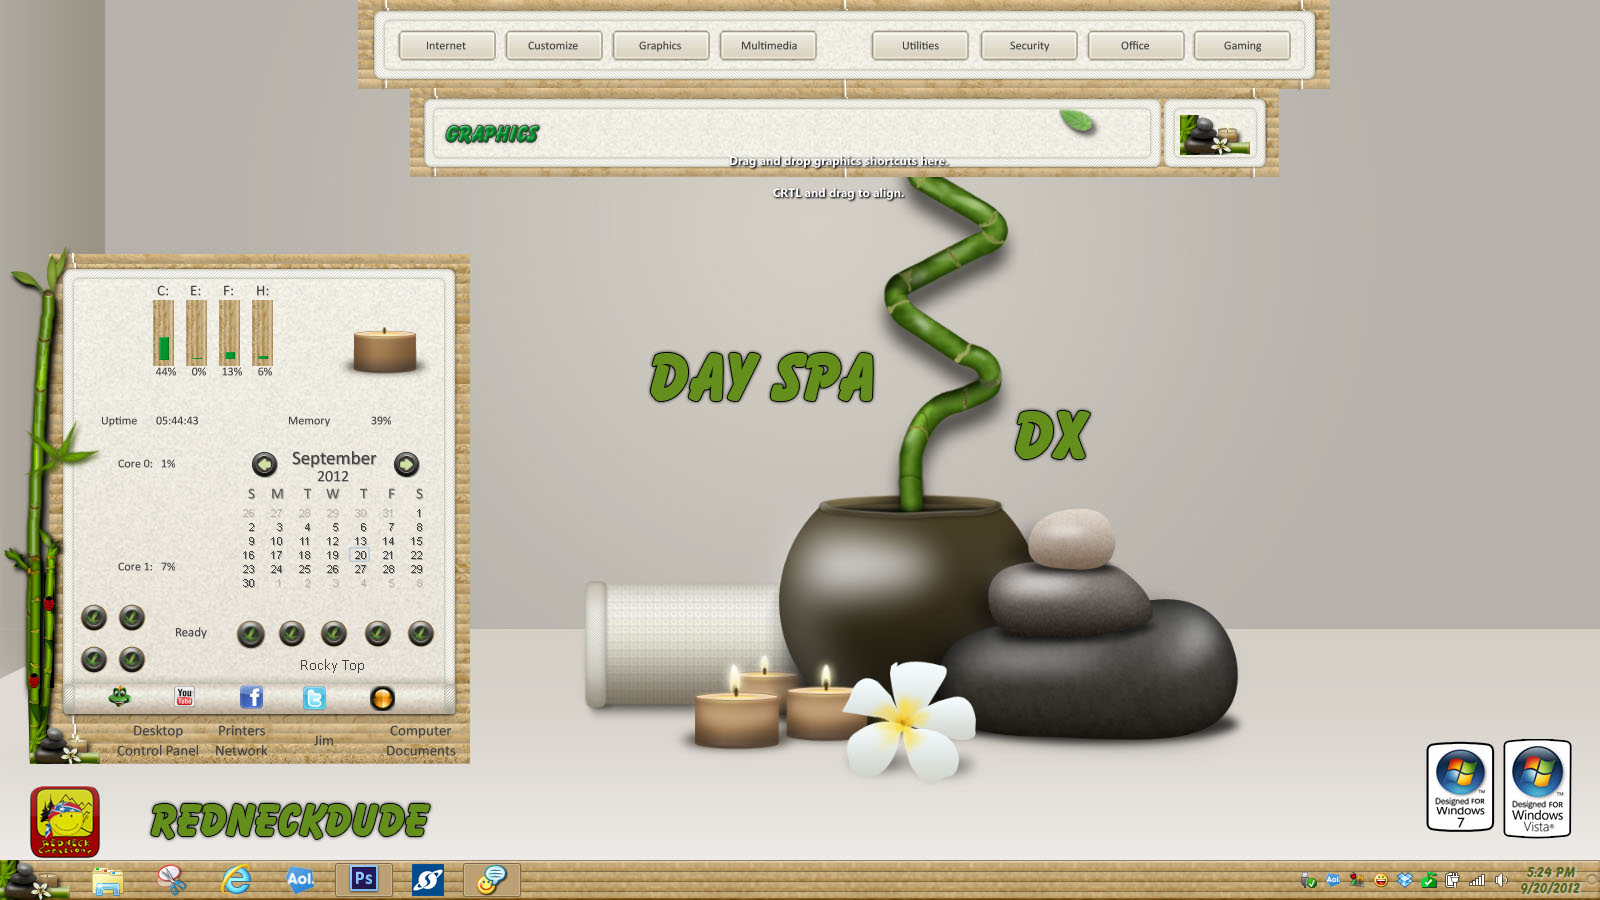 Day Spa DX